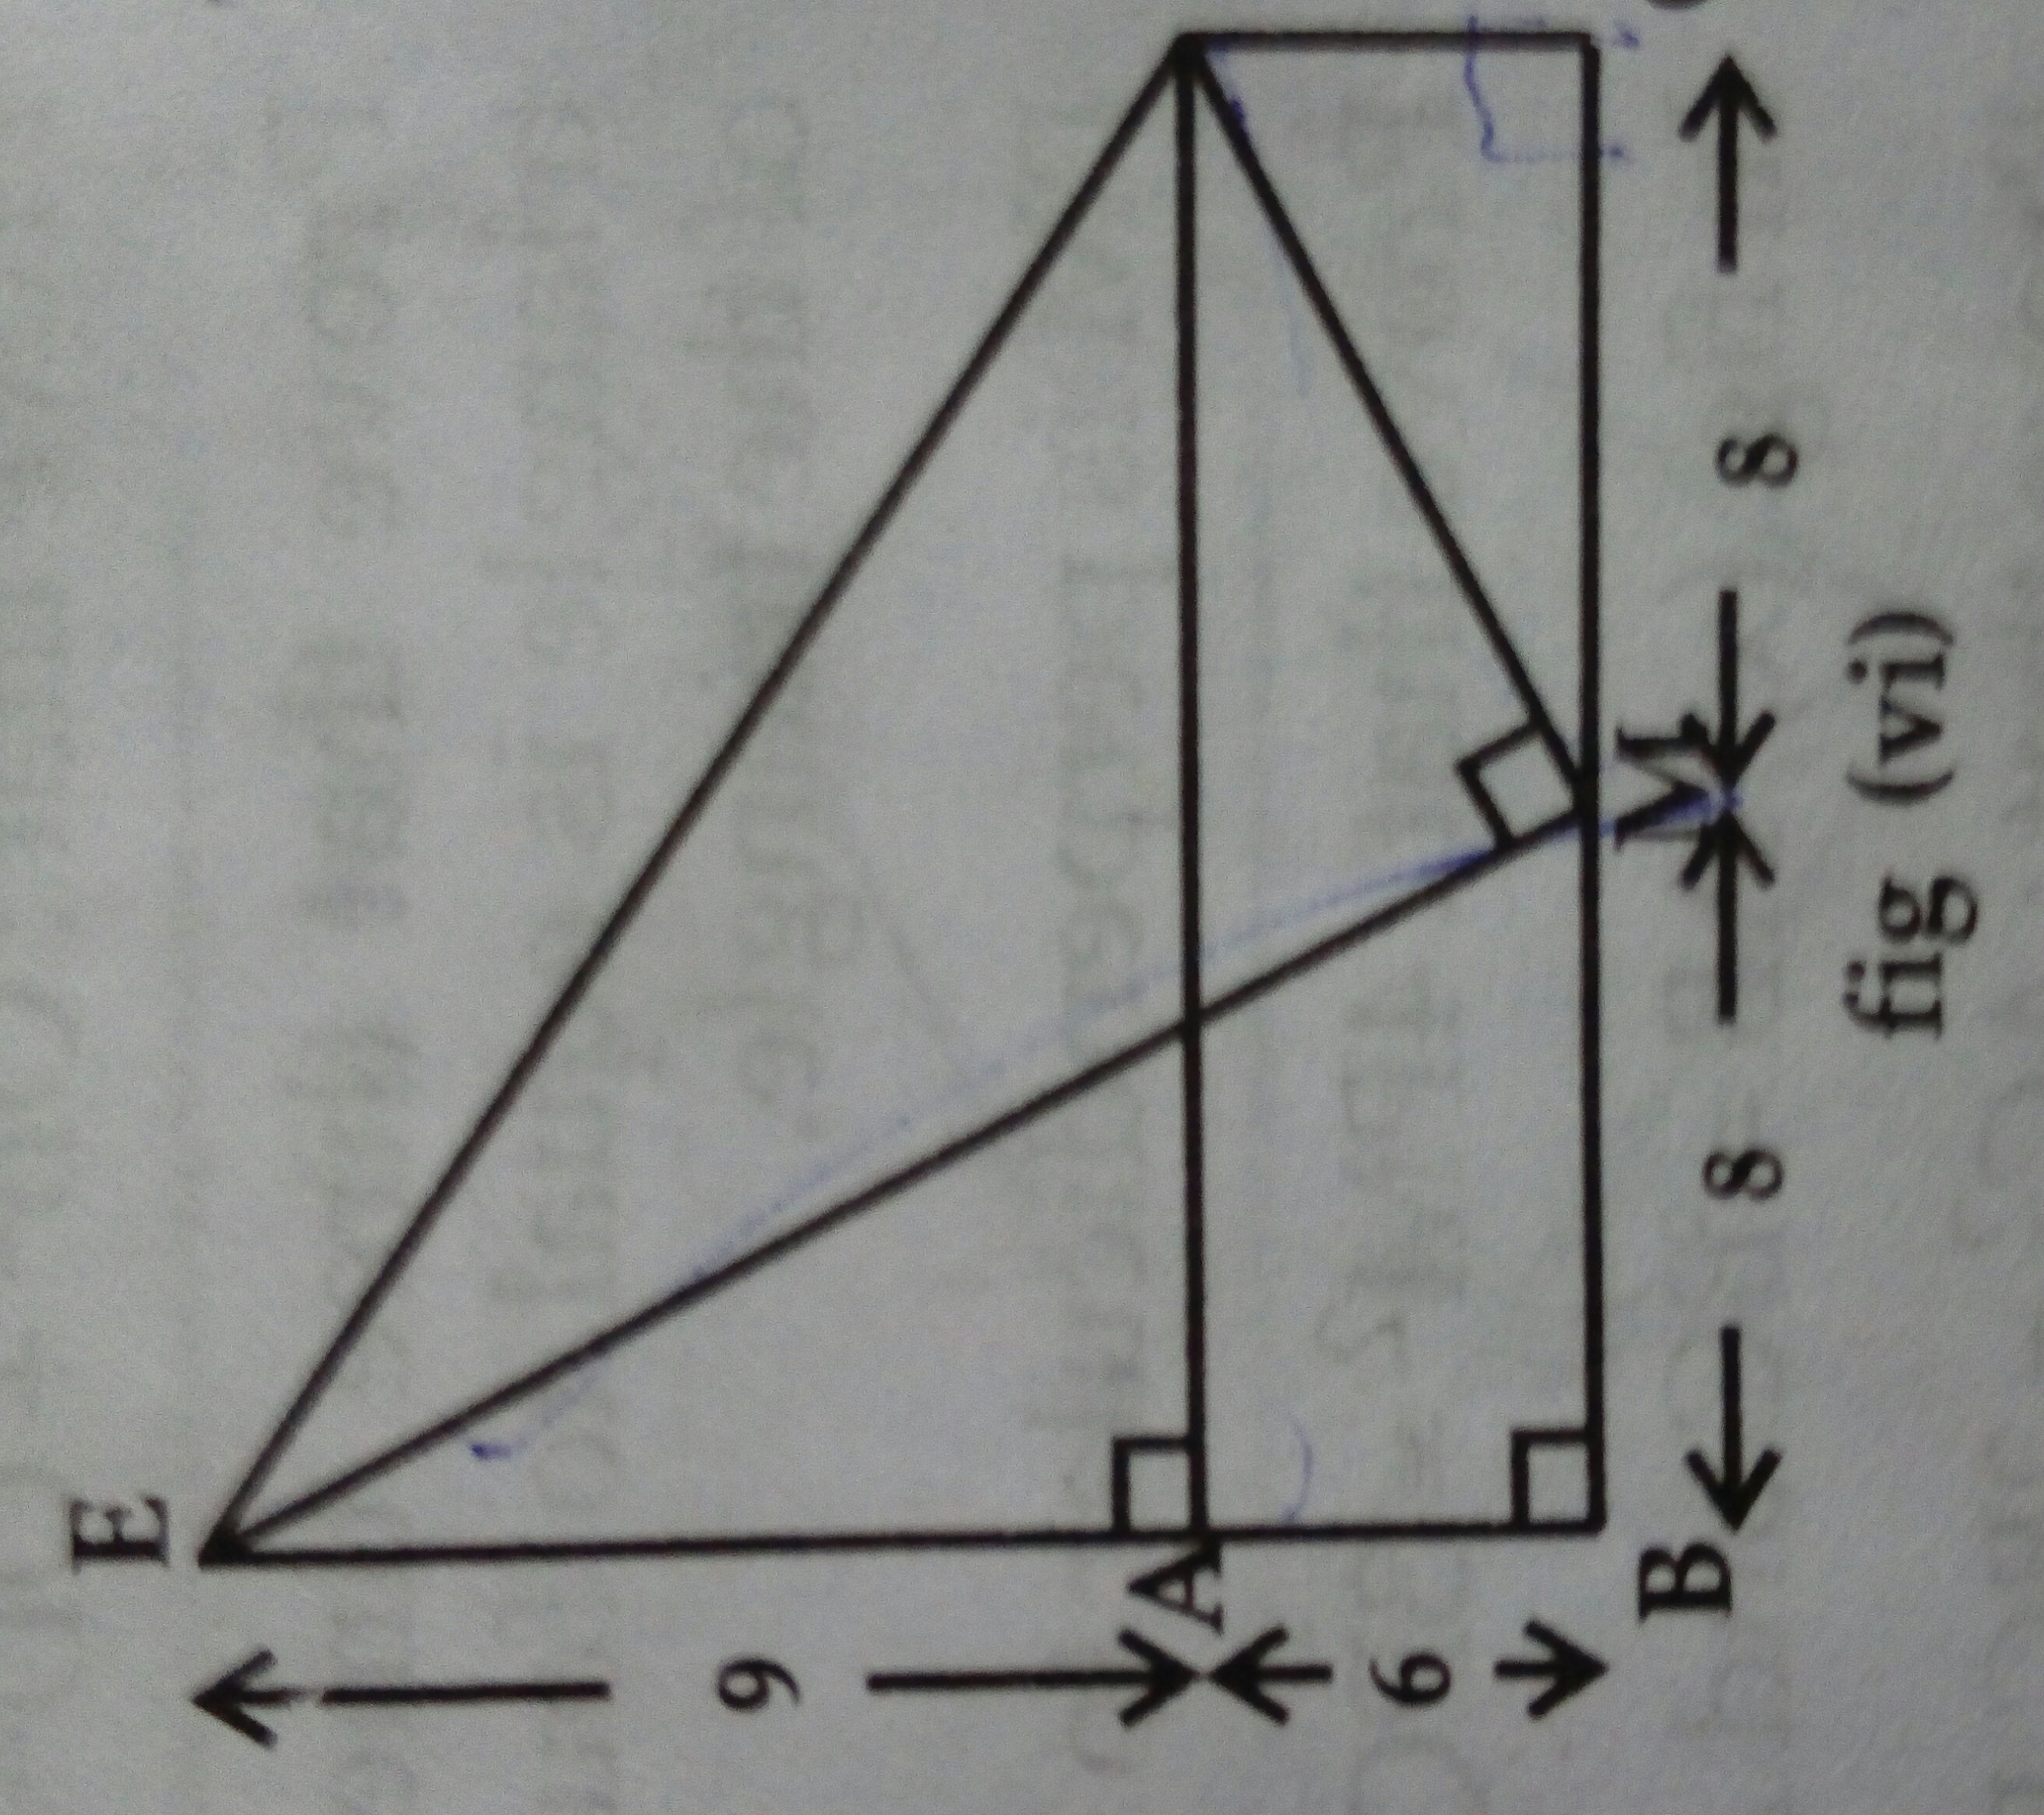 pythagoras theorem questions and answers pdf